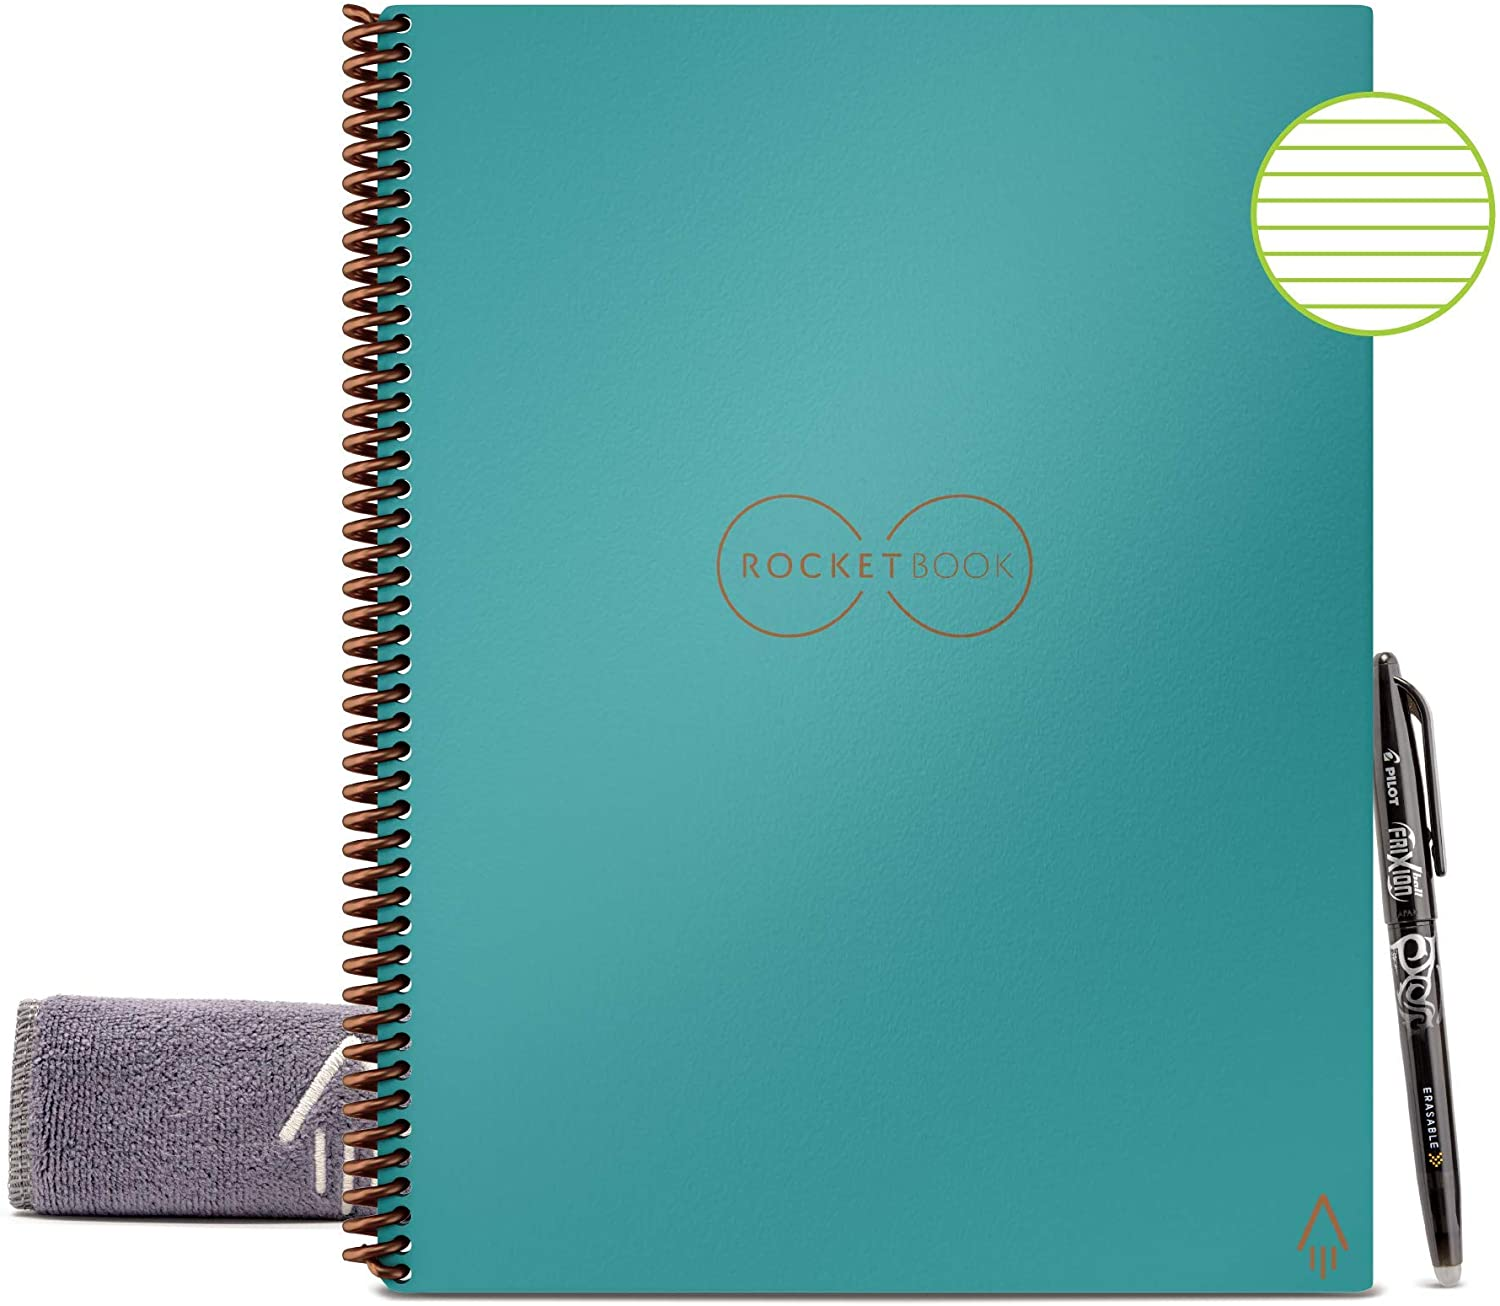 Smart Notebook Add Symbols